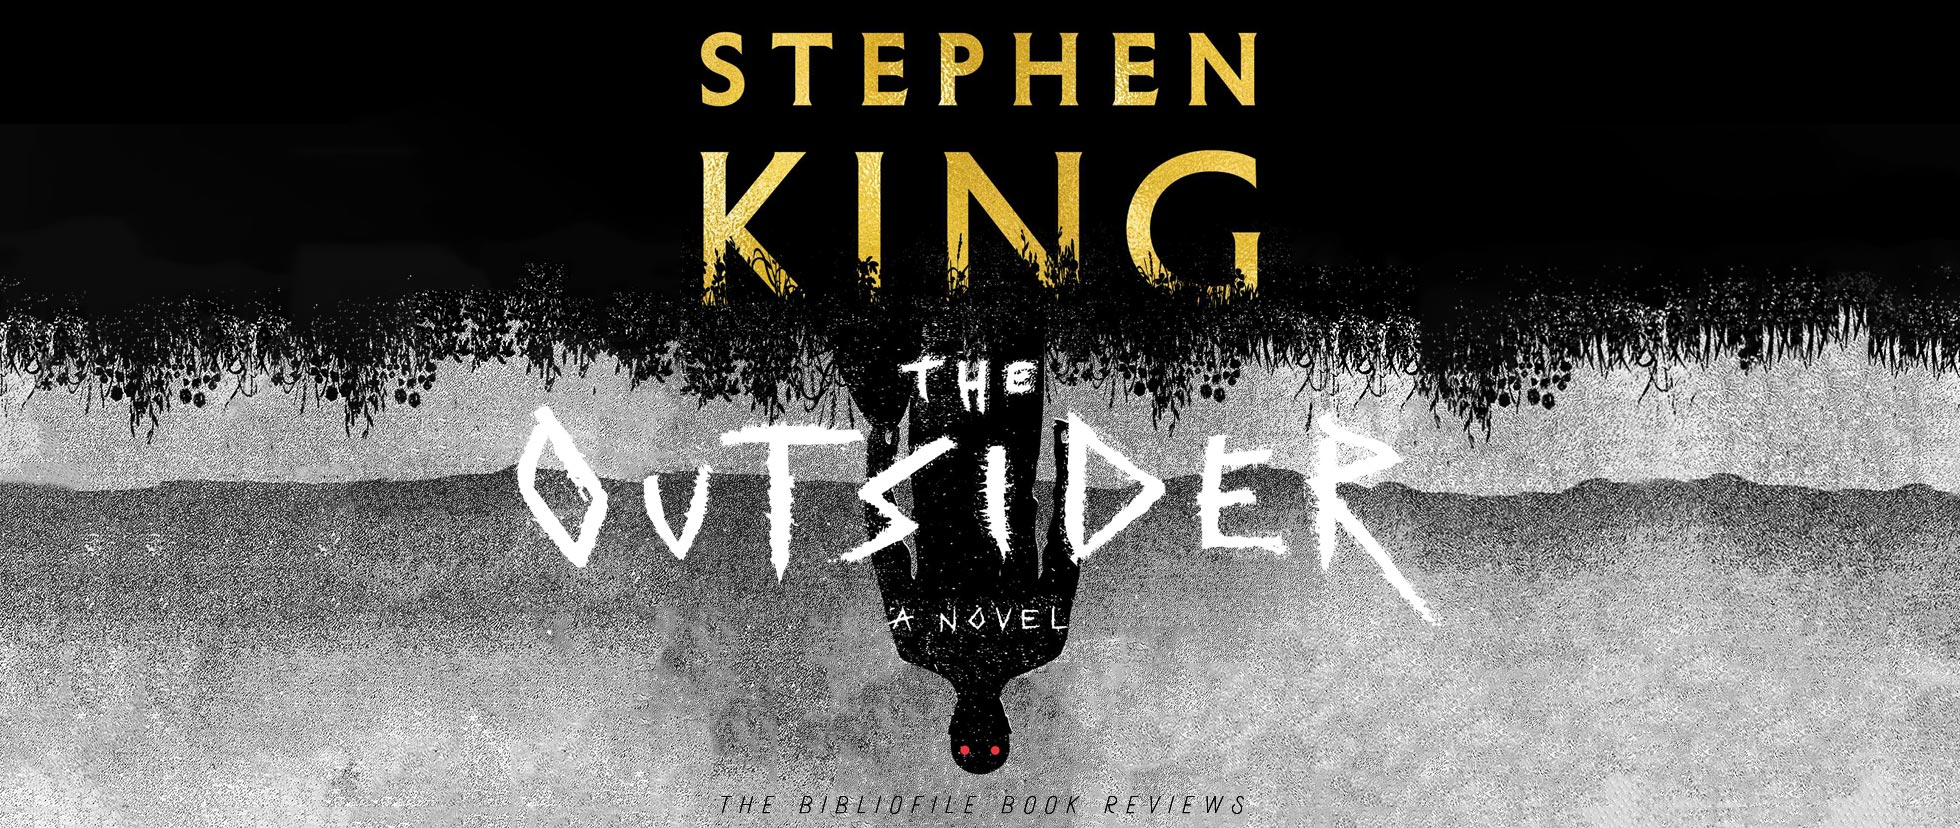 the outsider stephen king summary review synopsis ending